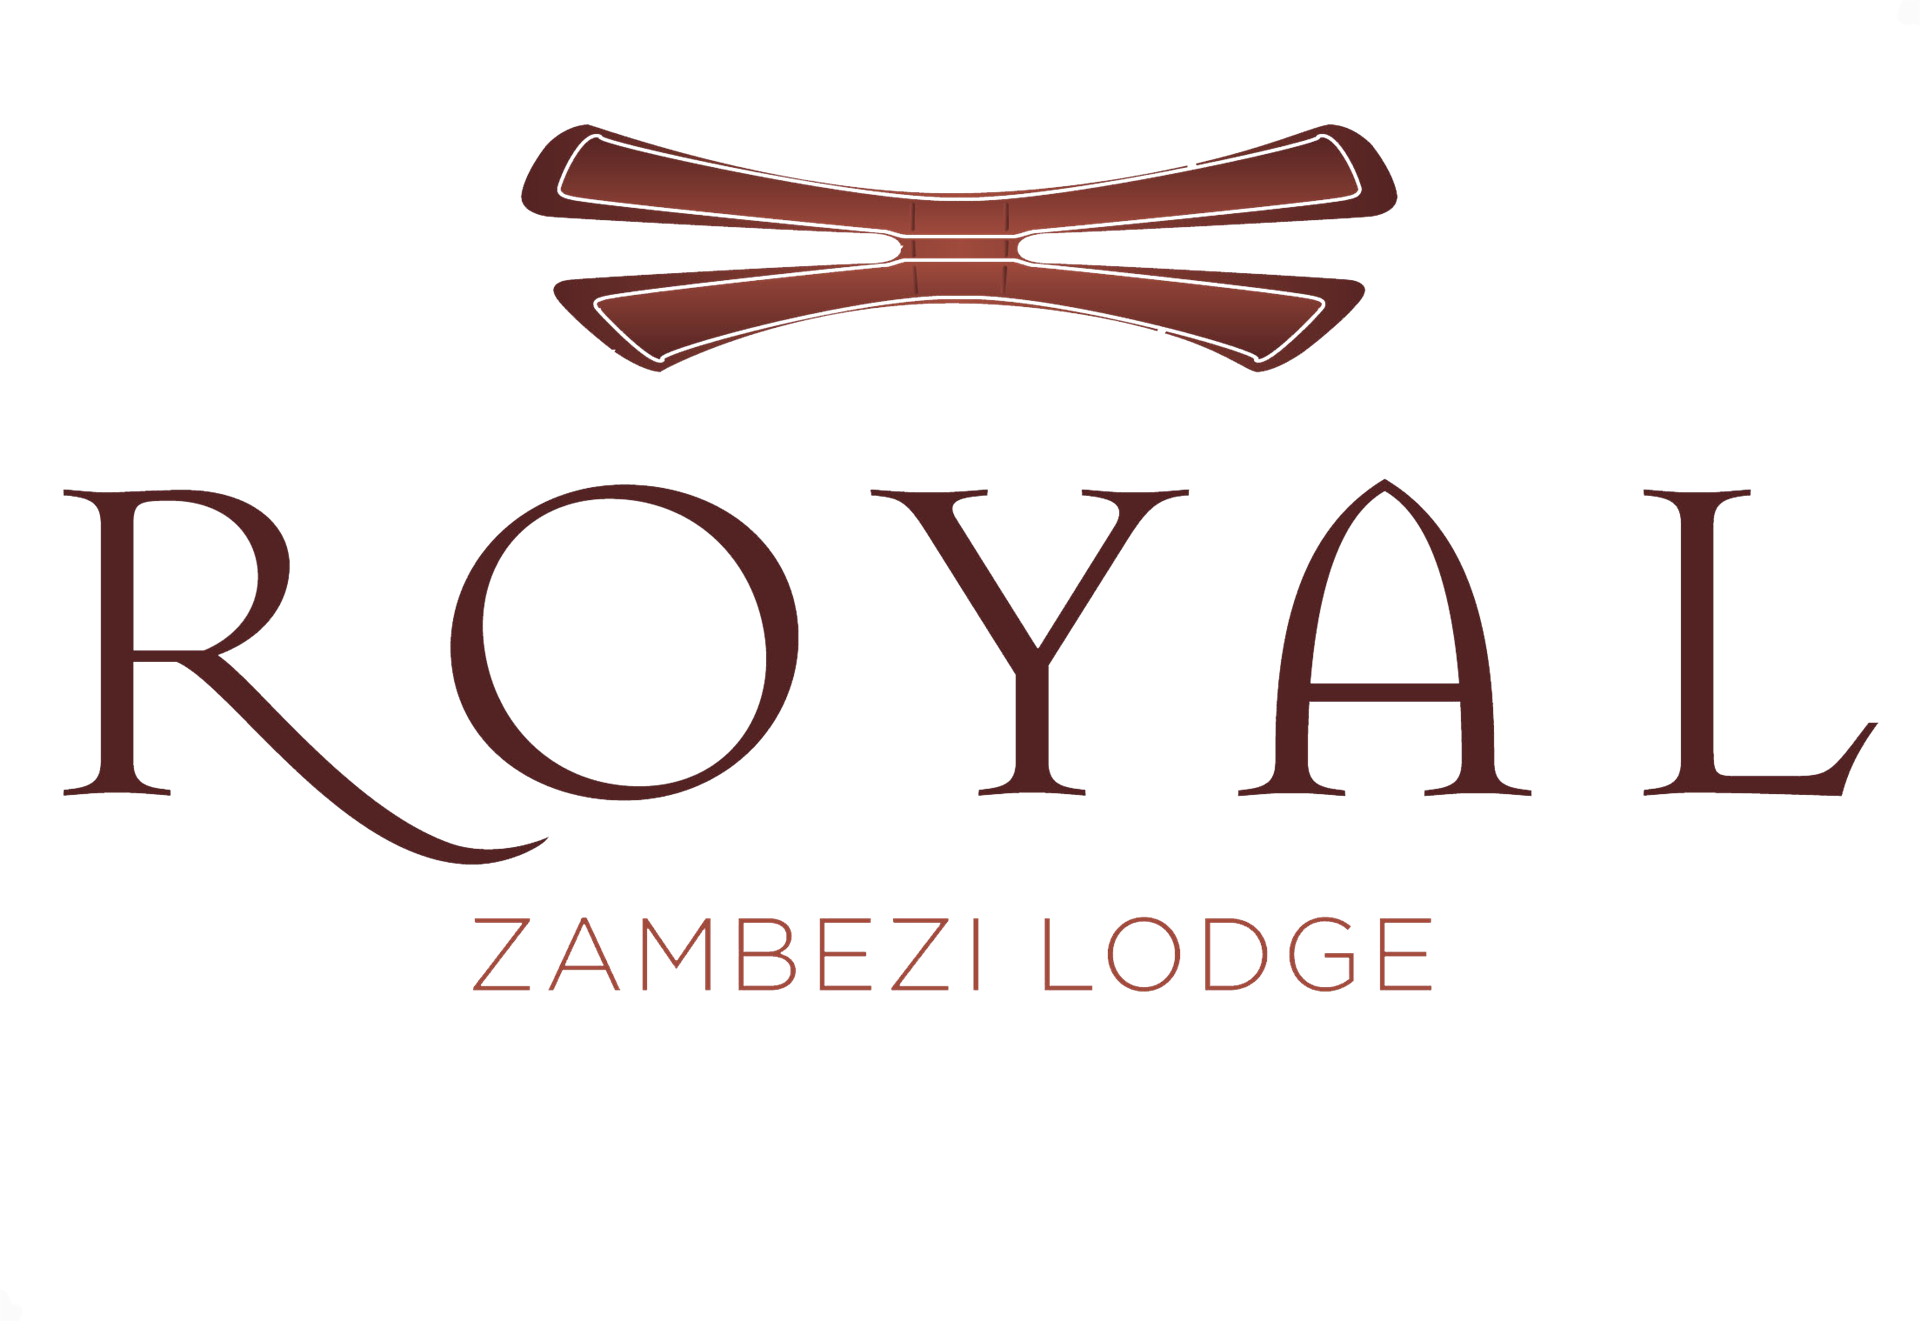 Royal Zambezi Lodge.